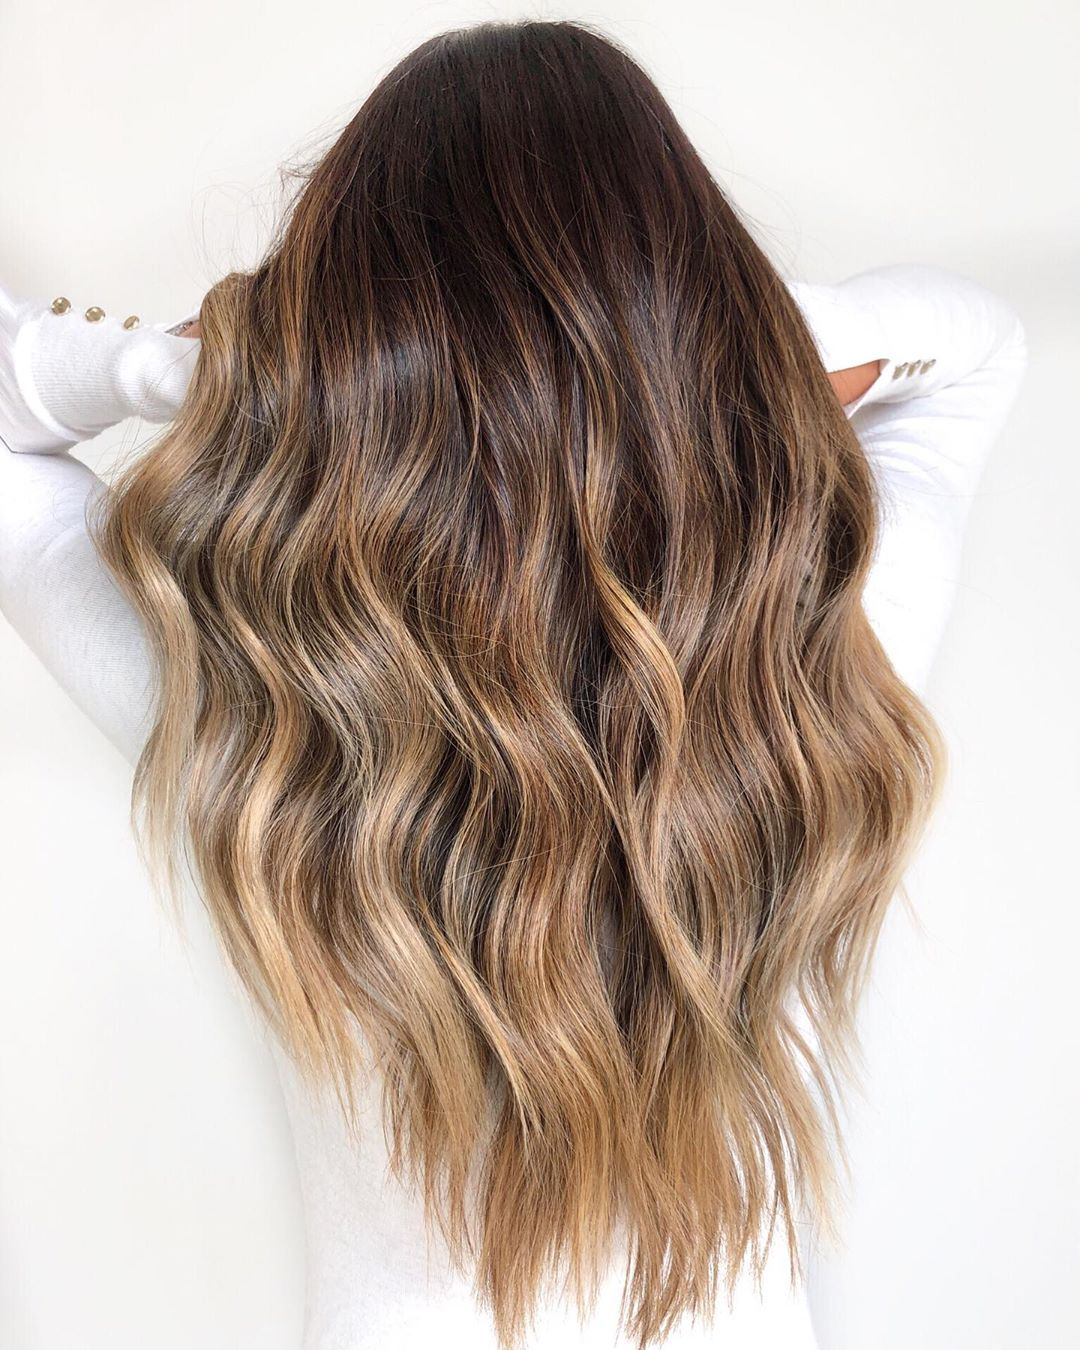 High Shine Mocha Latte Hair Color